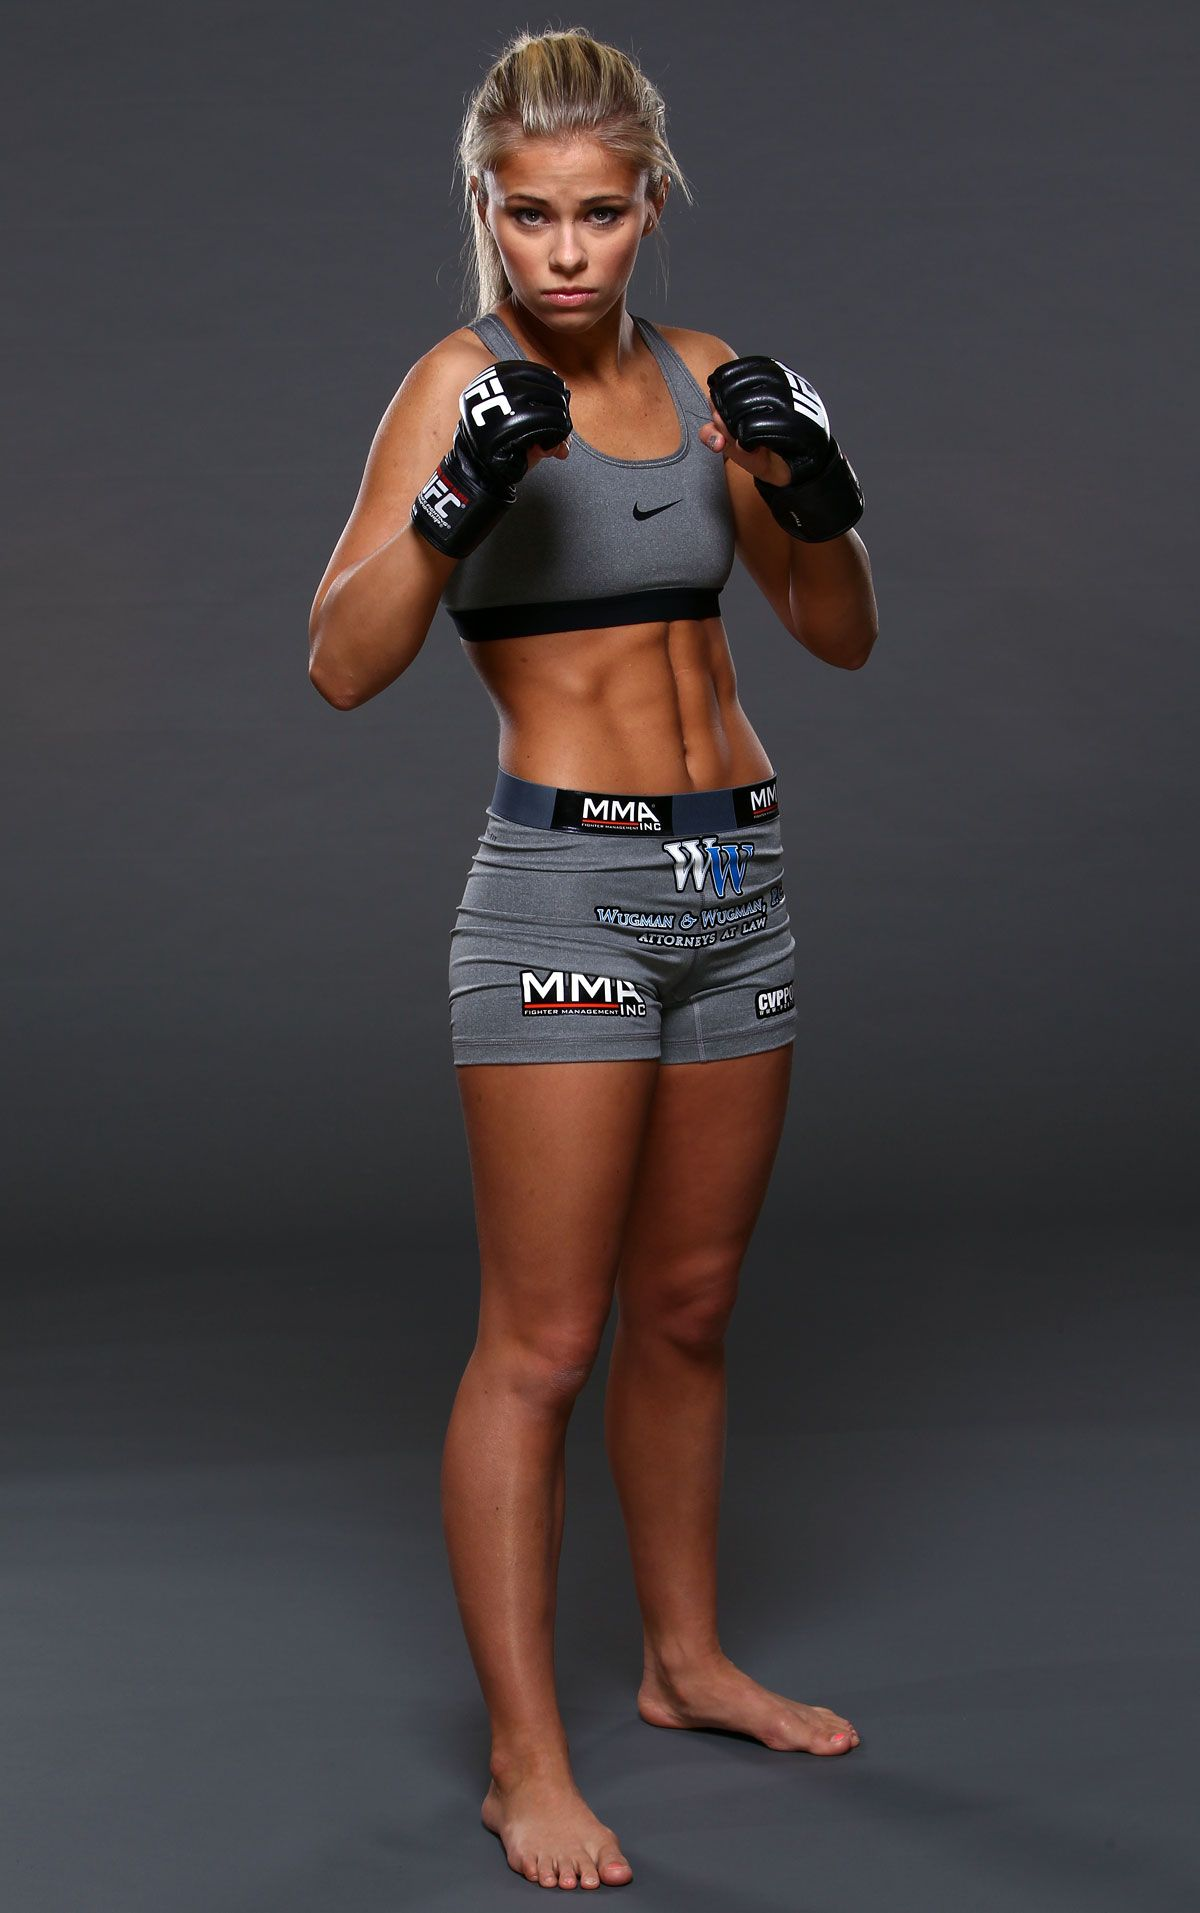 how to become a woman ufc fighter